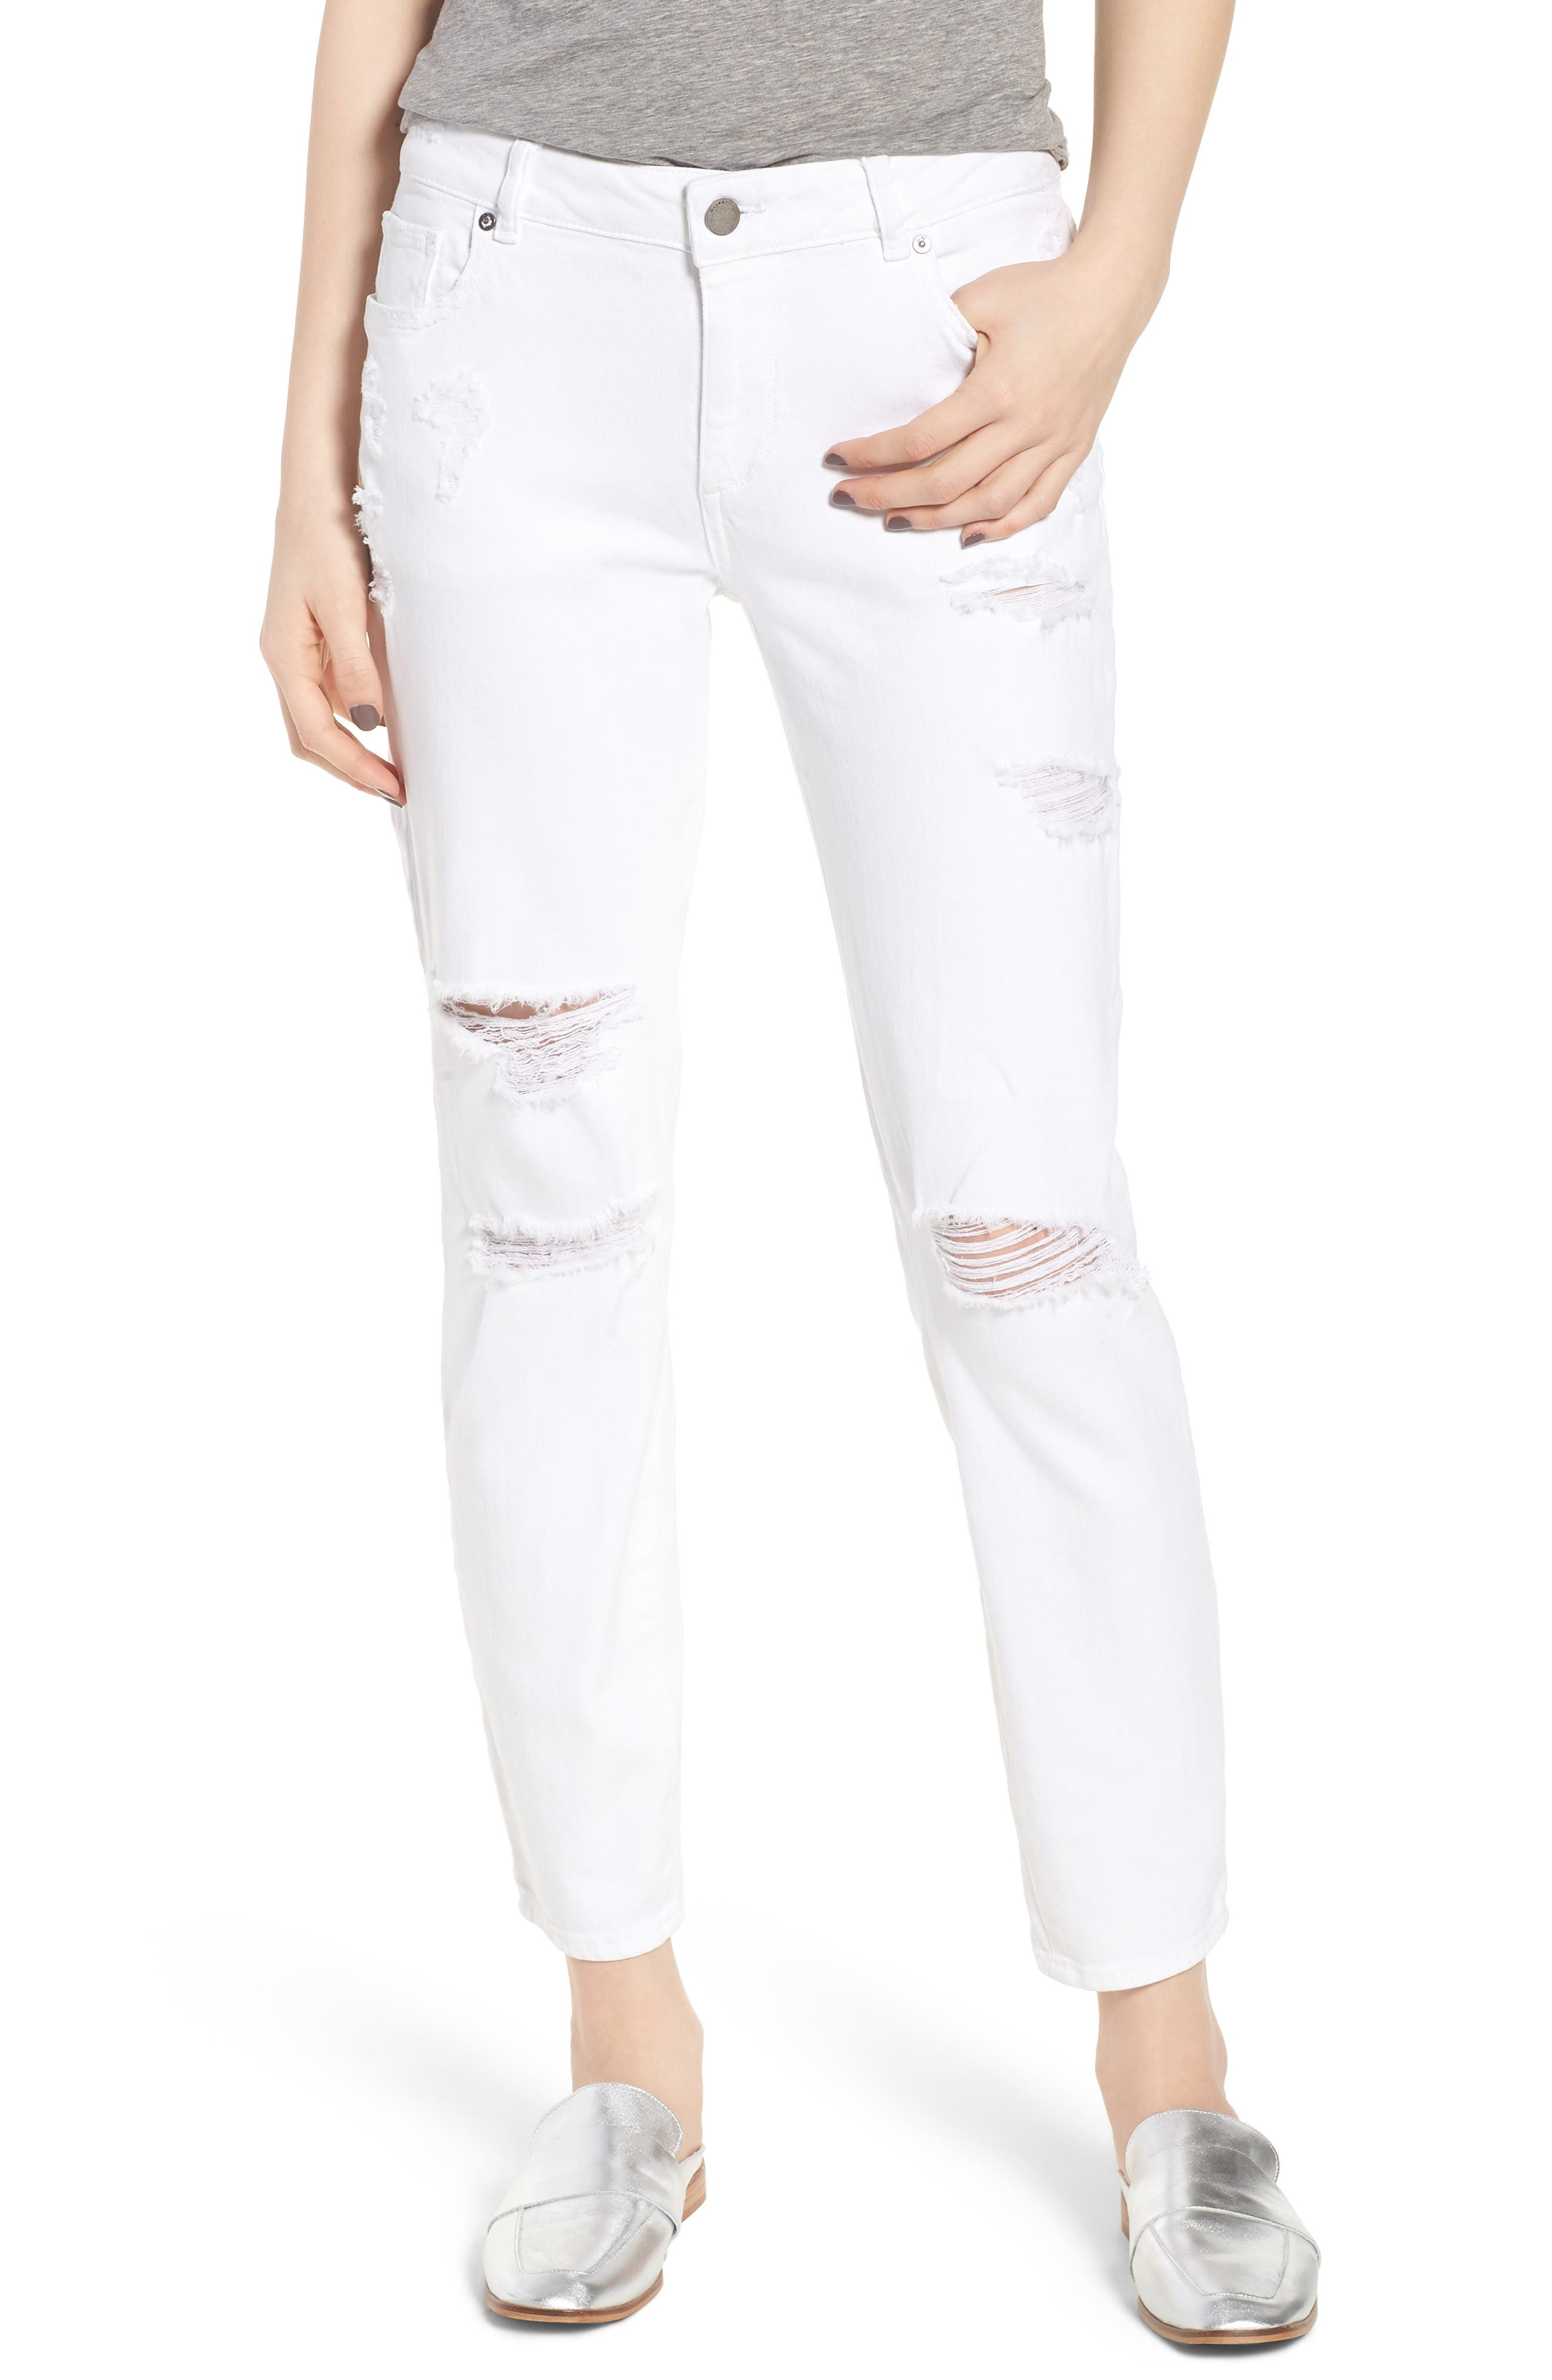 Davis Ripped Ankle Girlfriend Jeans,                             Main thumbnail 1, color,                             100